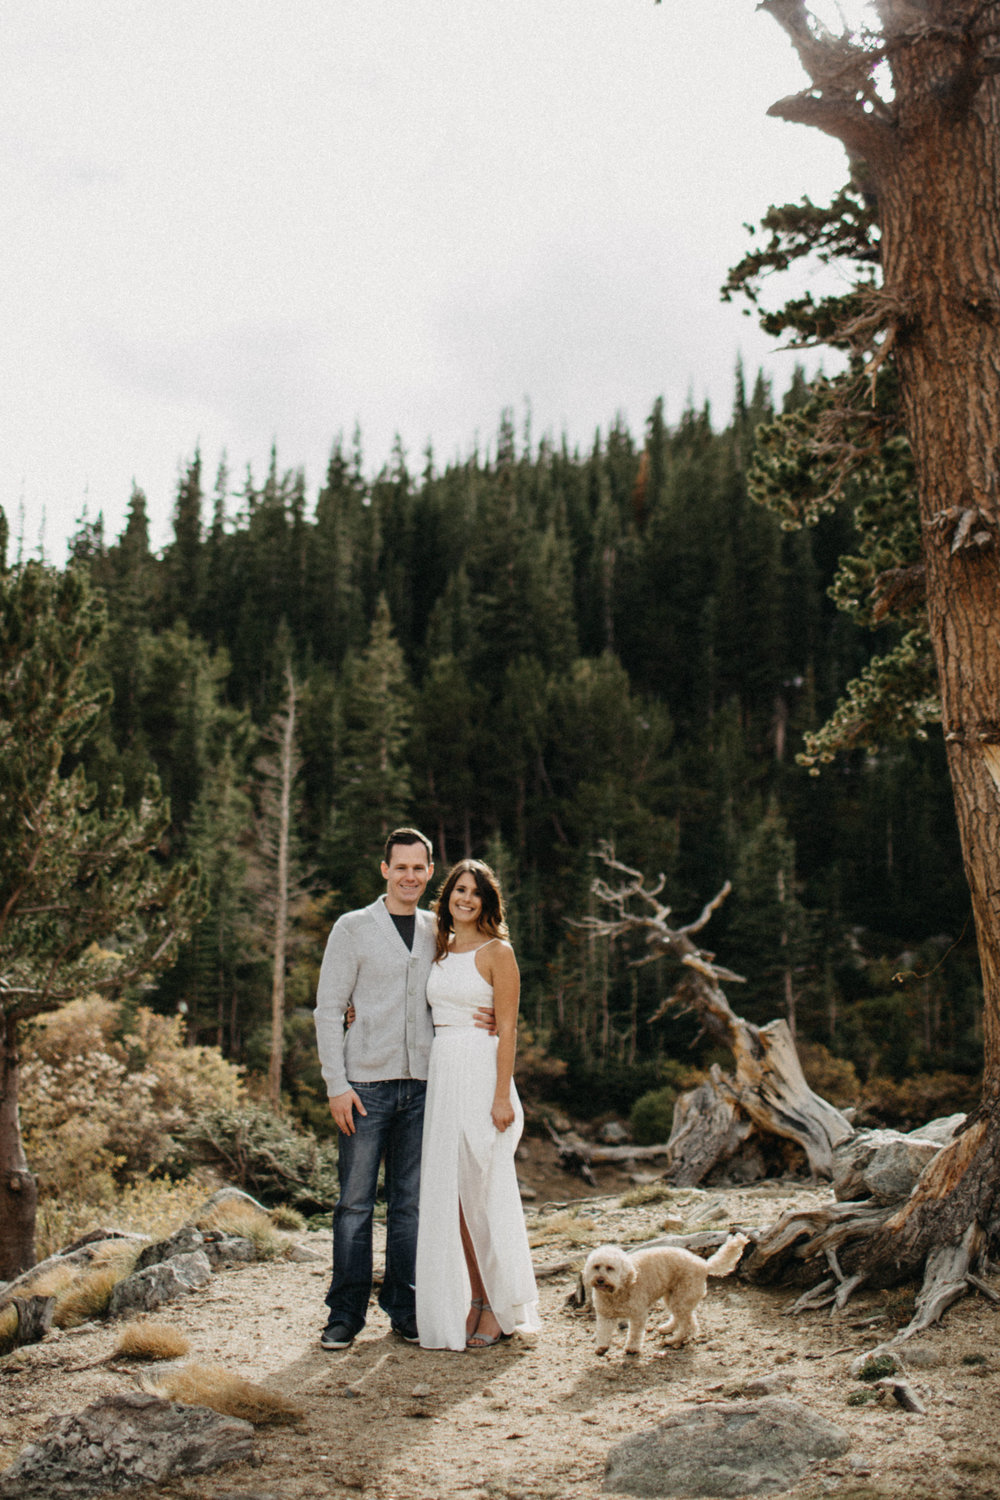 Destination Mountain Elopement Photographer in Denver, Colorado